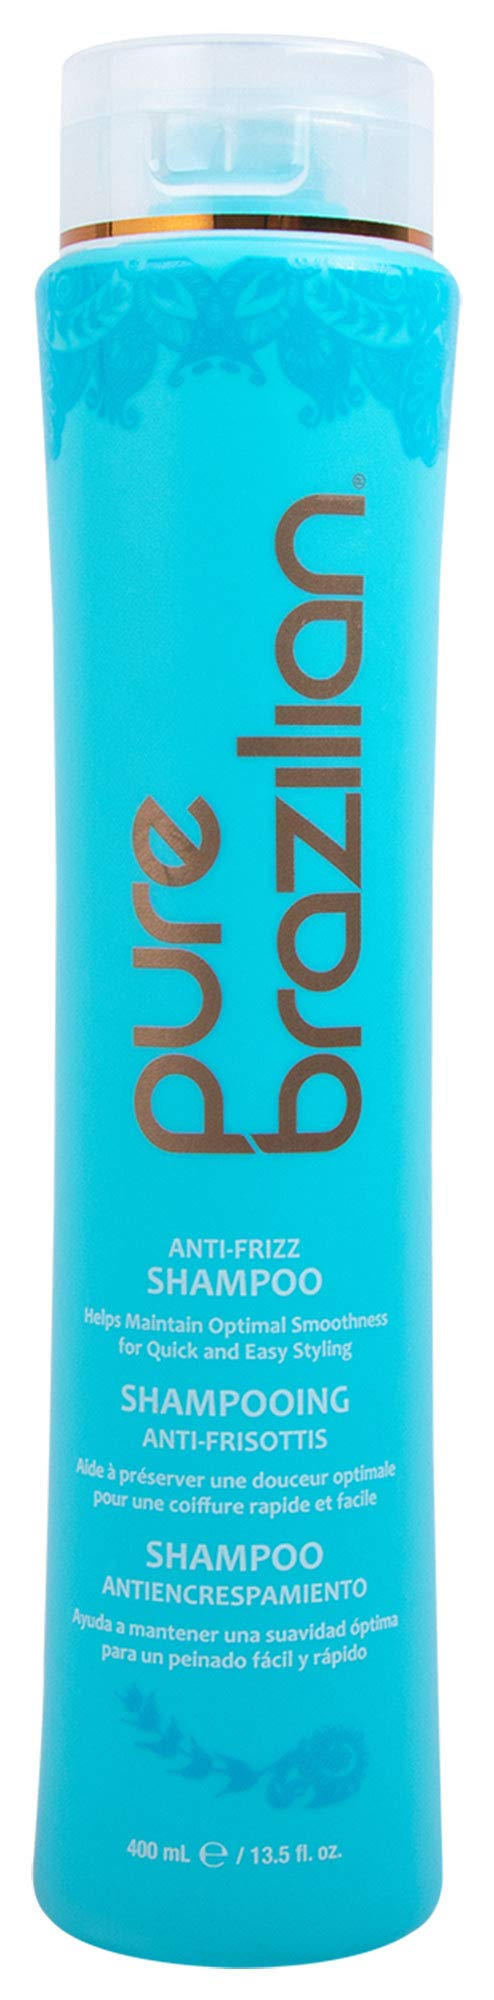 Pure Brazilian - Anti Frizz Daily Shampoo - Salt-Free, Color Safe, With